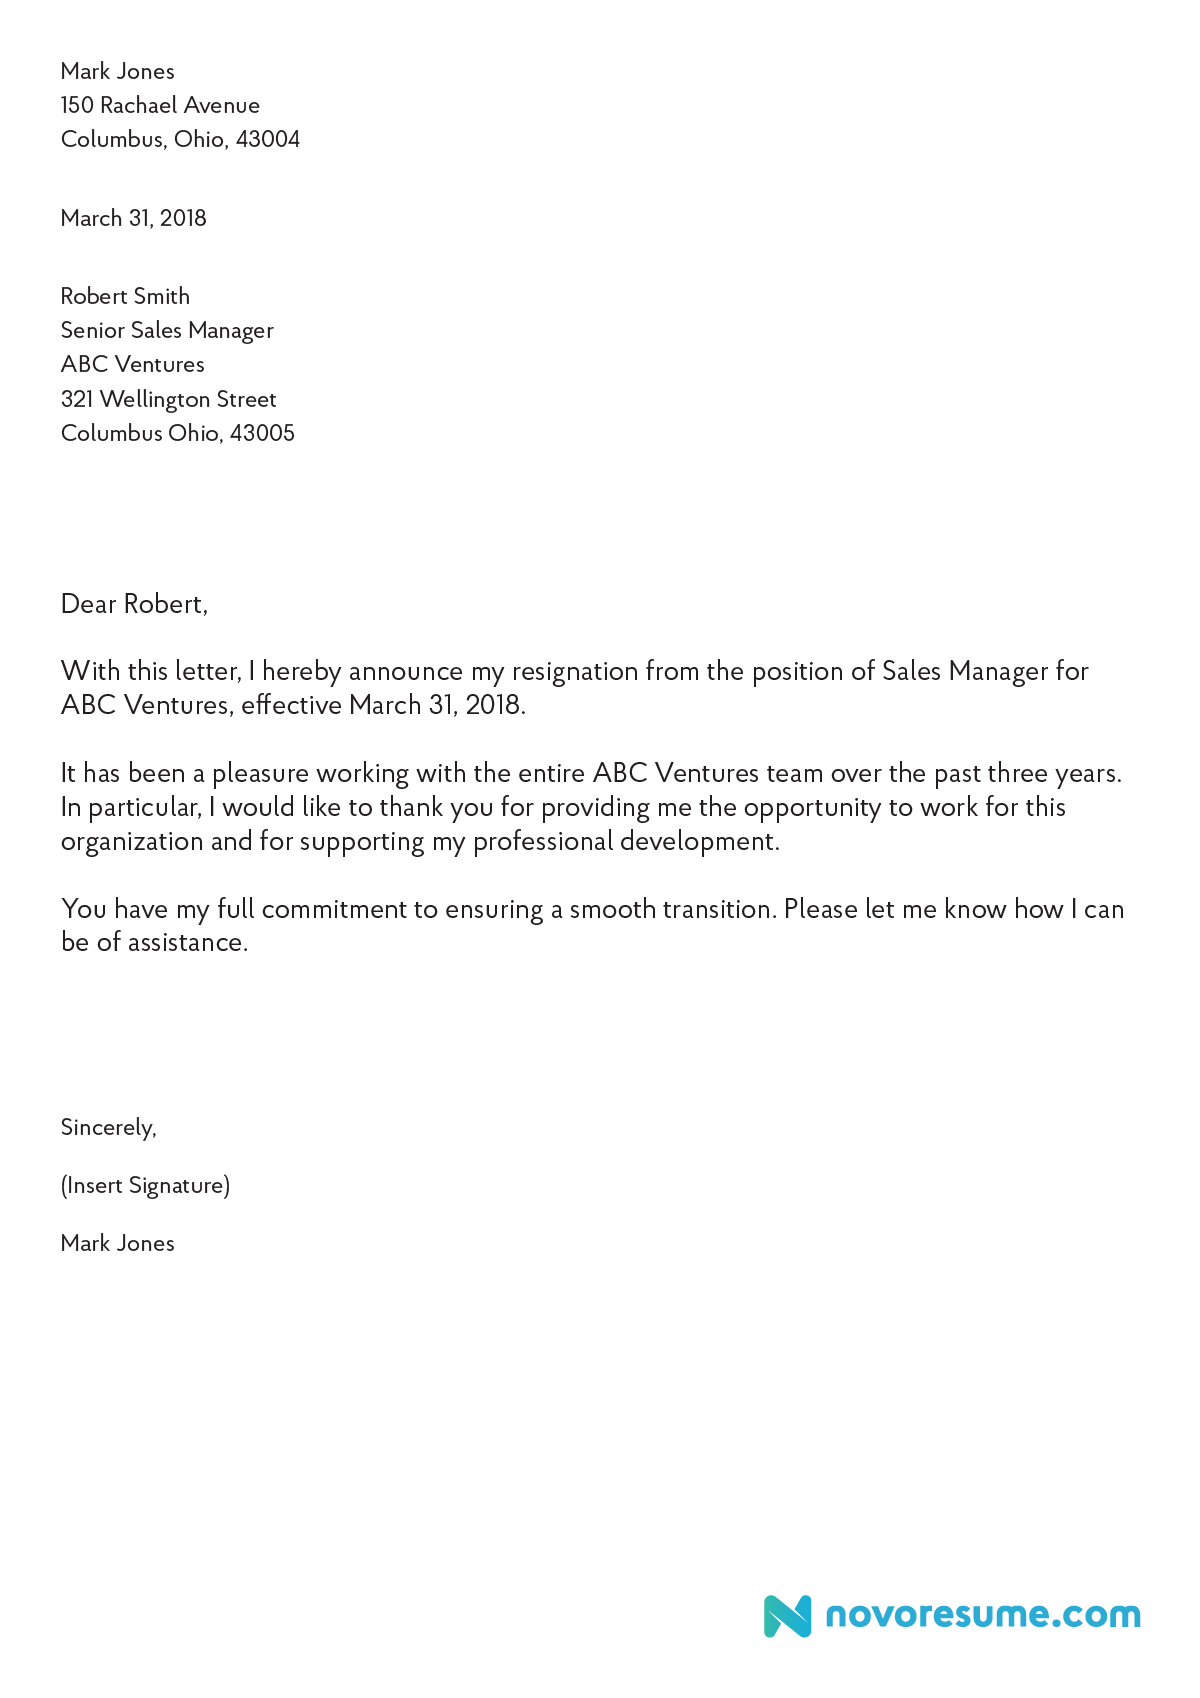 Resignation letter due to sickness resignation letter format for hr resignation letter sample 2018 altavistaventures Images